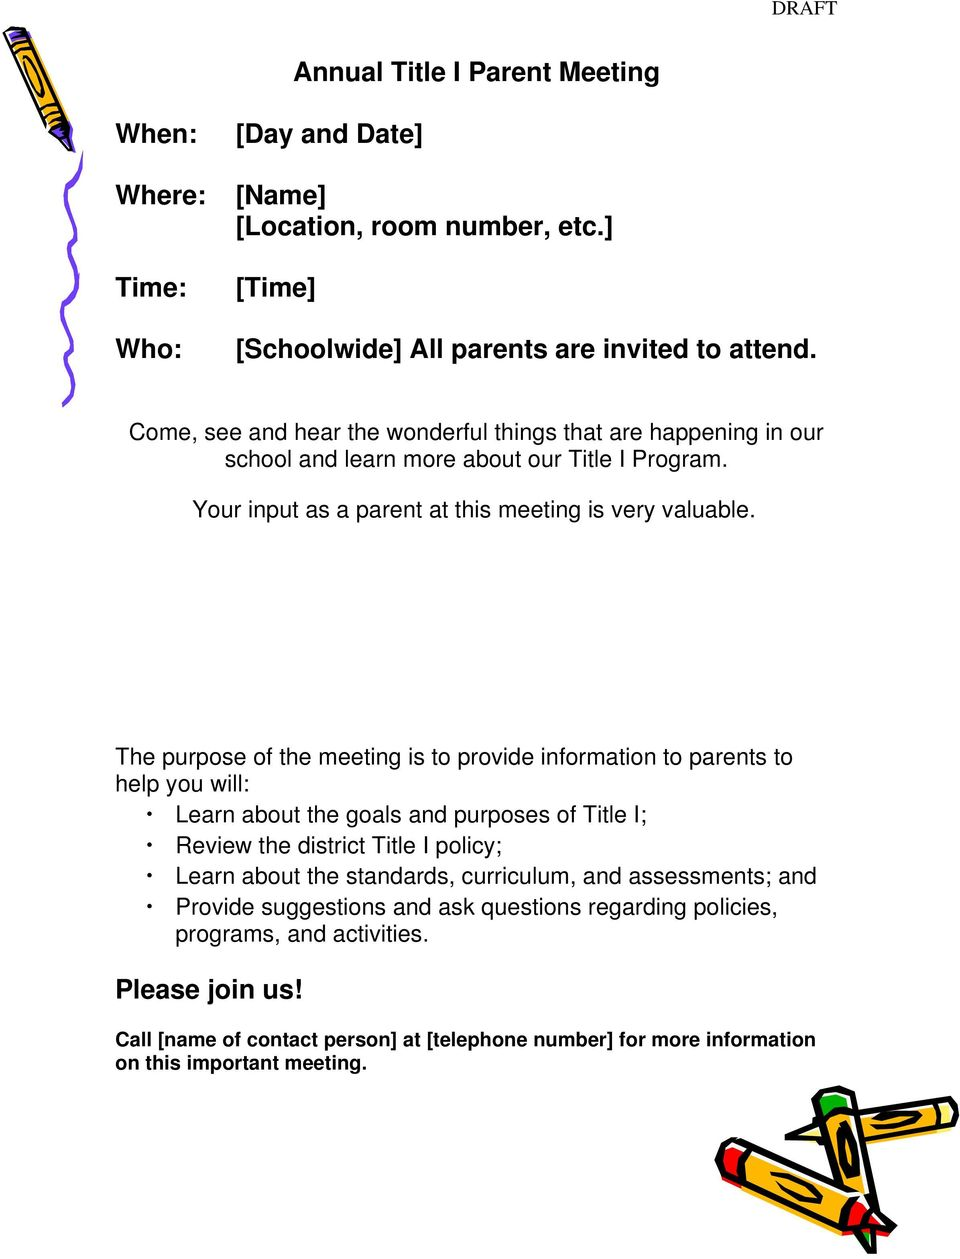 The purpose of the meeting is to provide information to parents to help you will: Learn about the goals and purposes of Title I; Review the district Title I policy; Learn about the